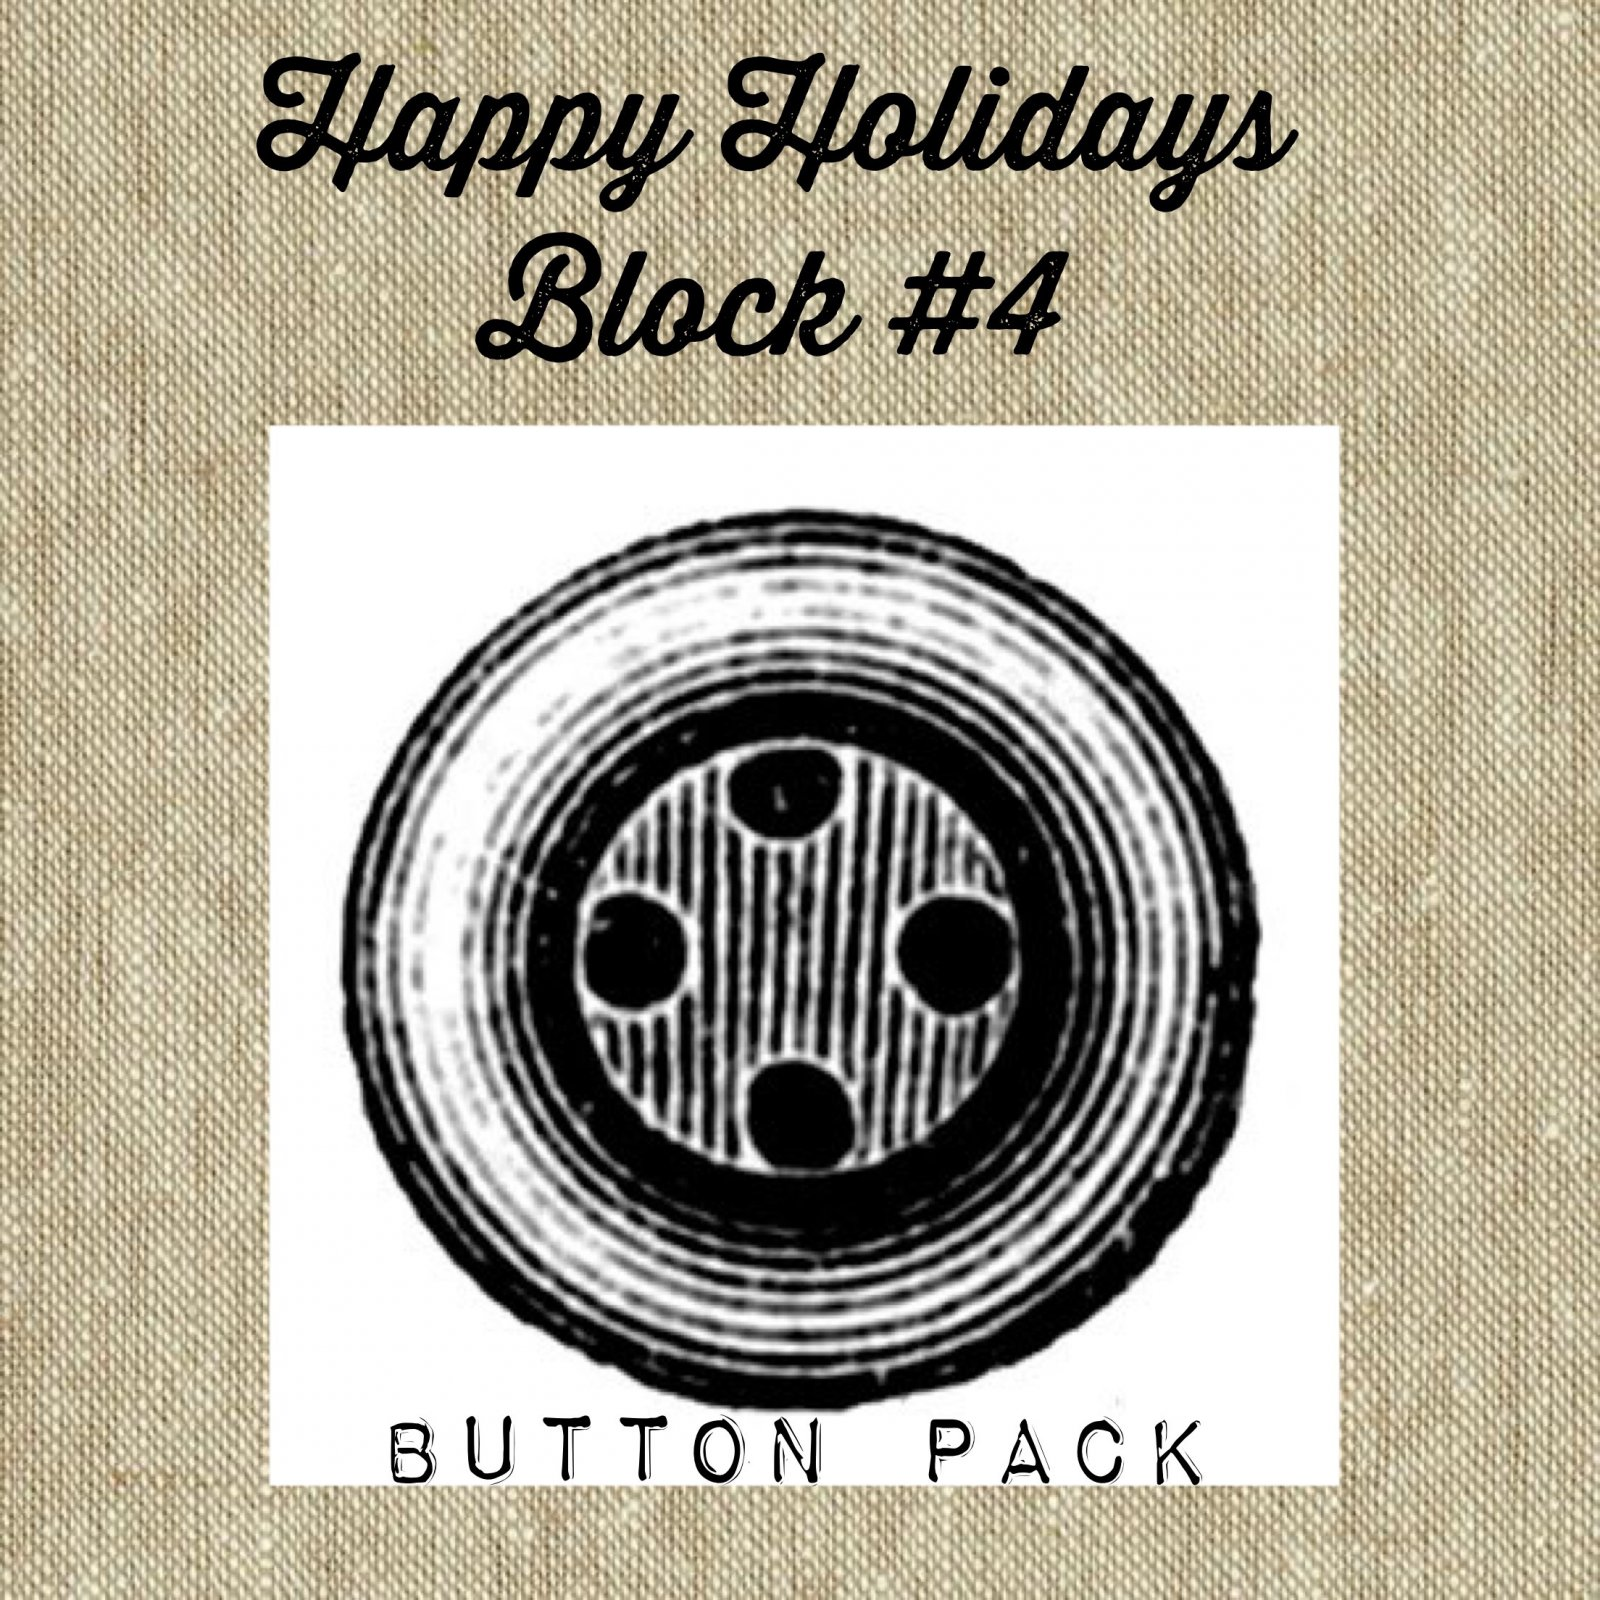 Happy Holidays Mystery Block #4 Letter I * Button Pack